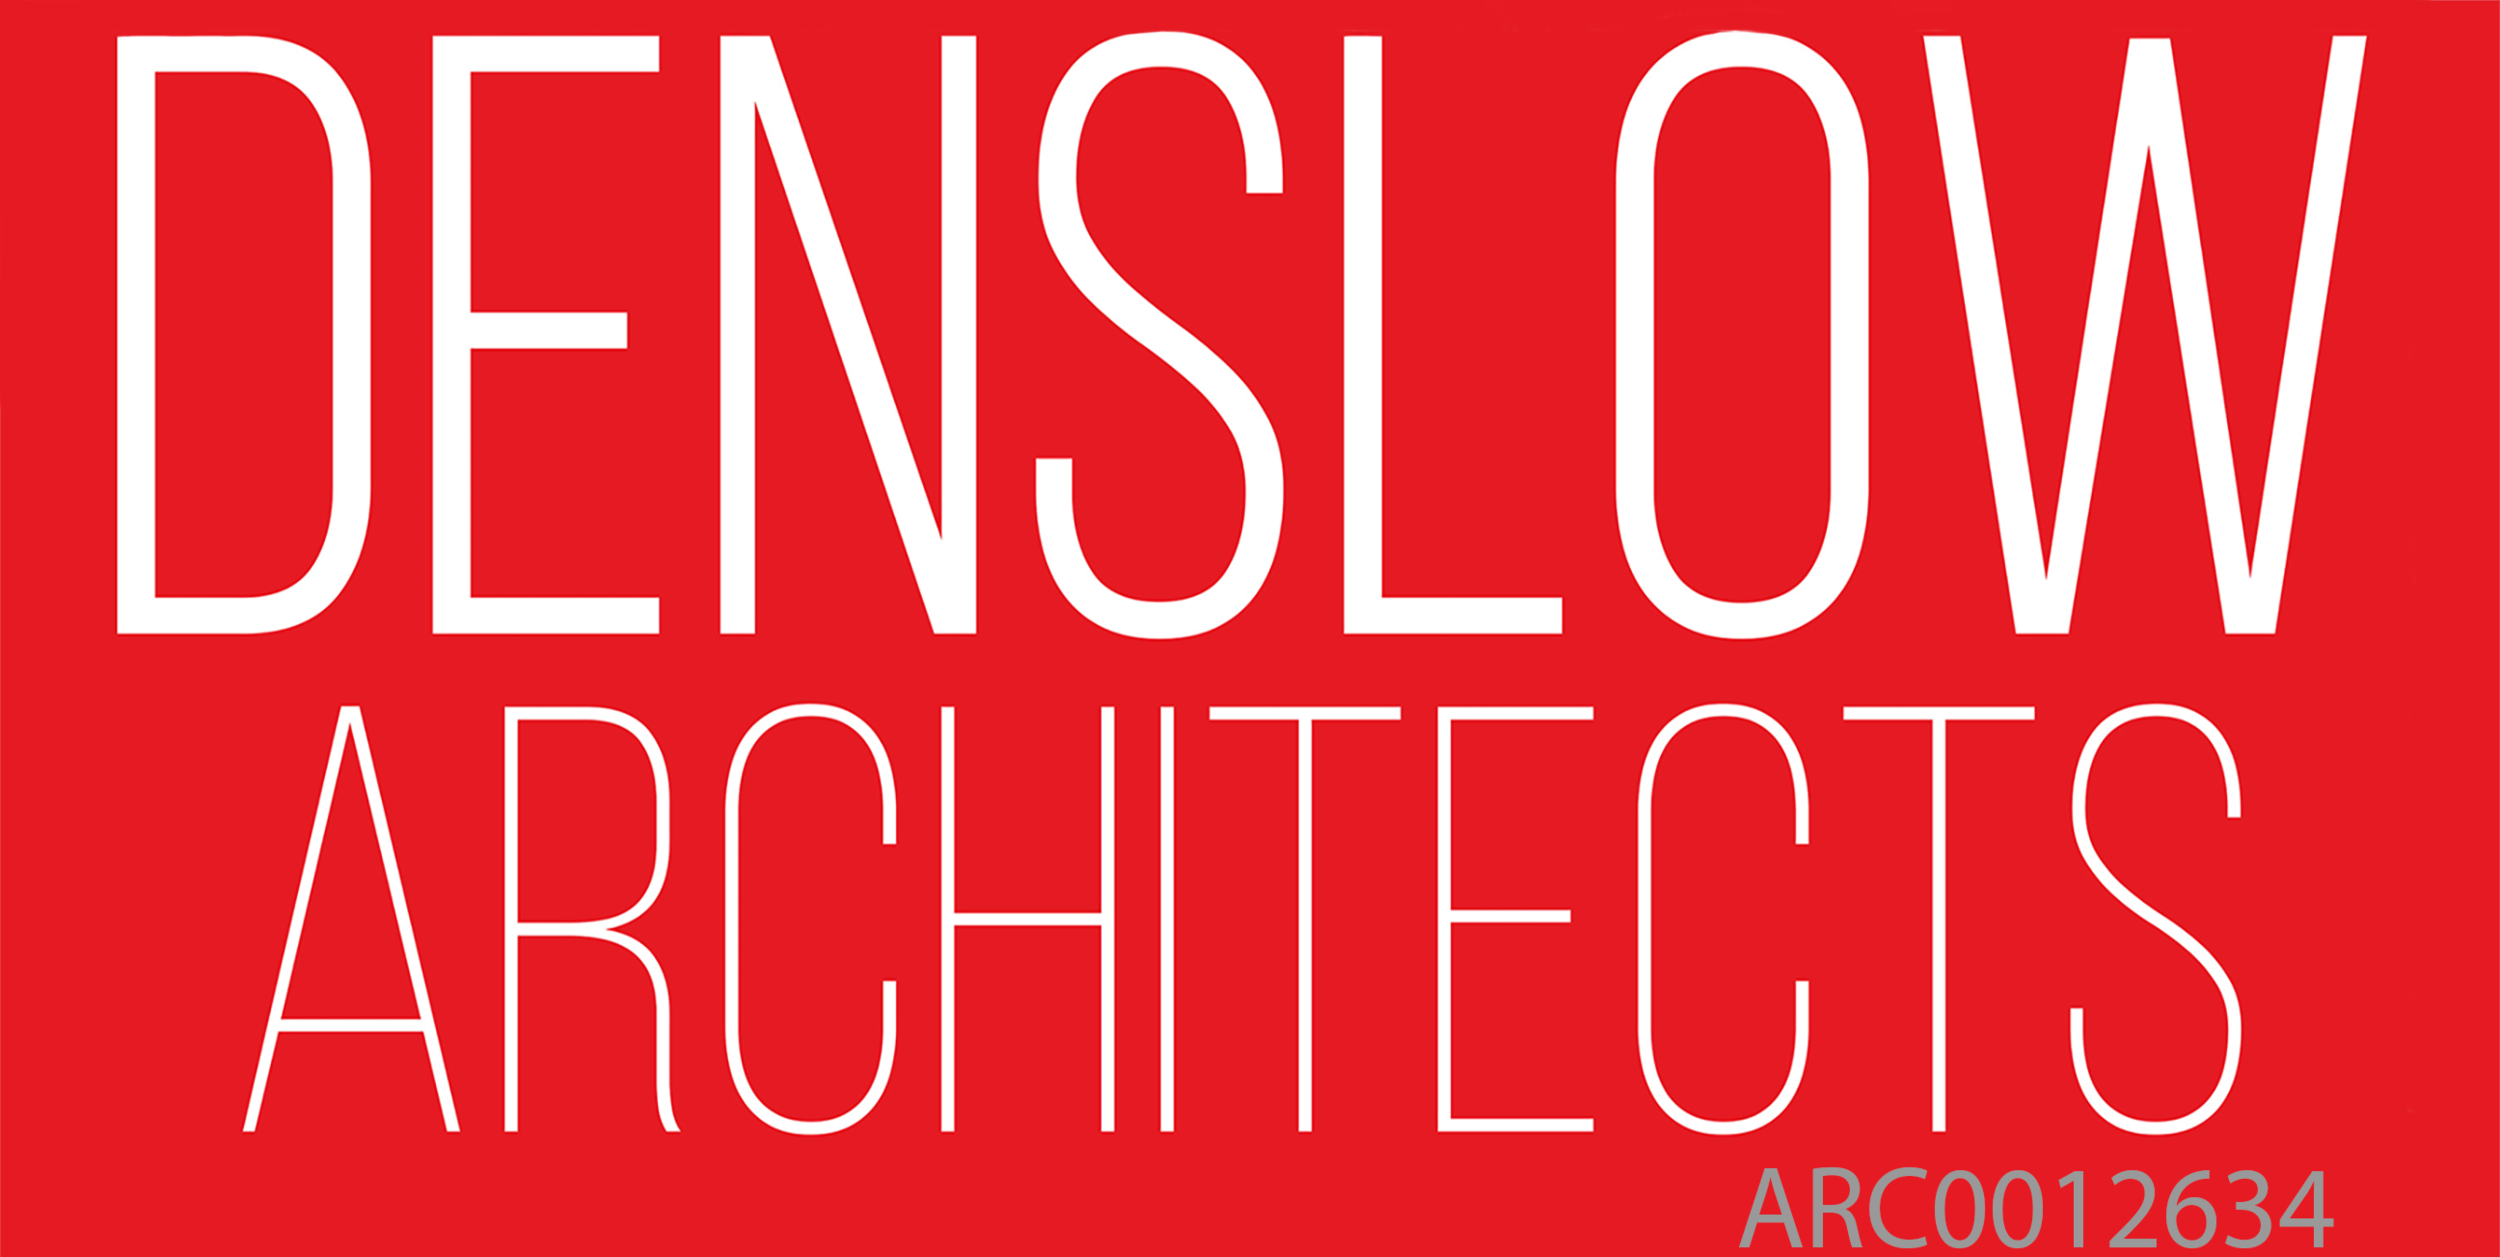 Denslow Architects